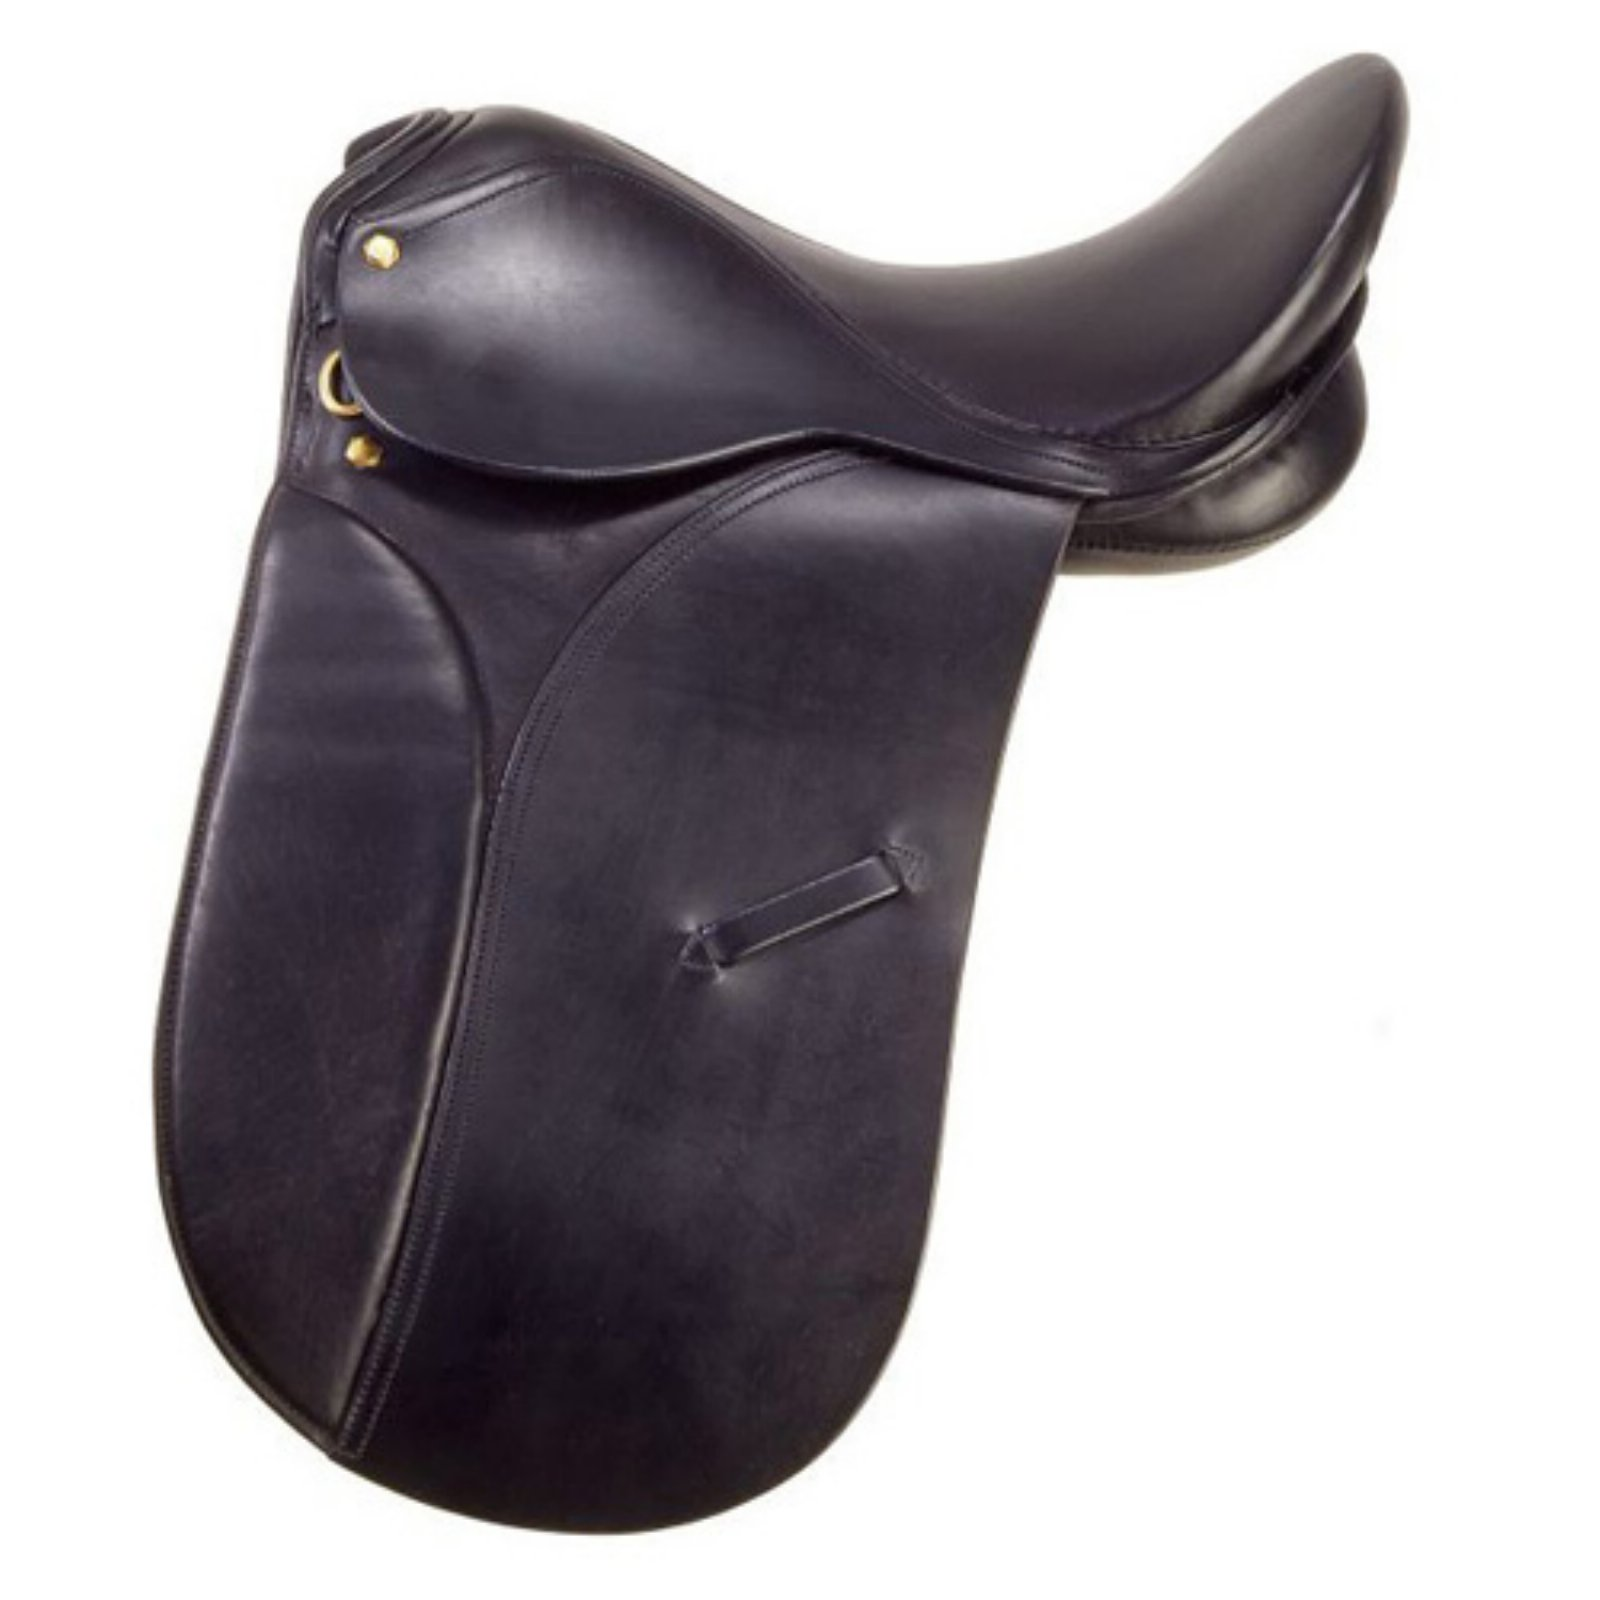 Silver Fox Black Dressage Saddle - ES1306-0-18